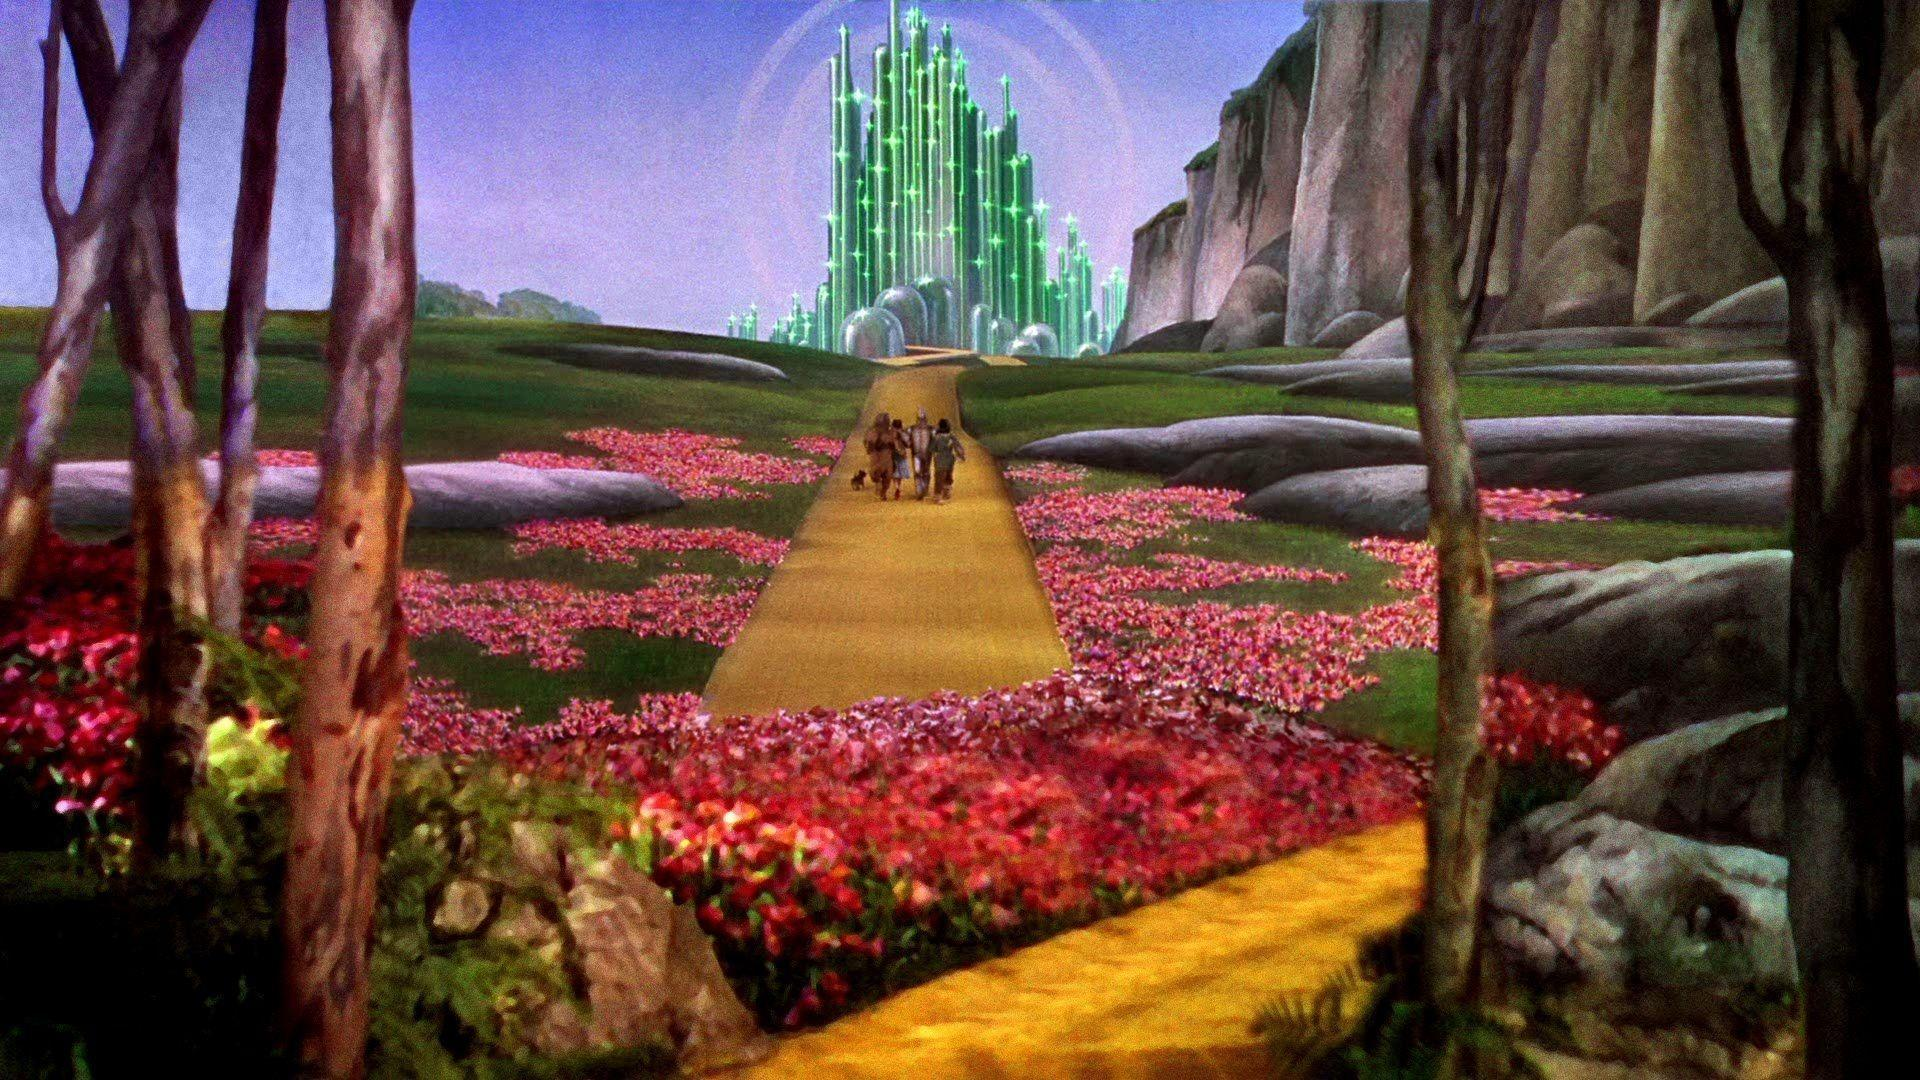 sextoon pictures of wizzard of oz